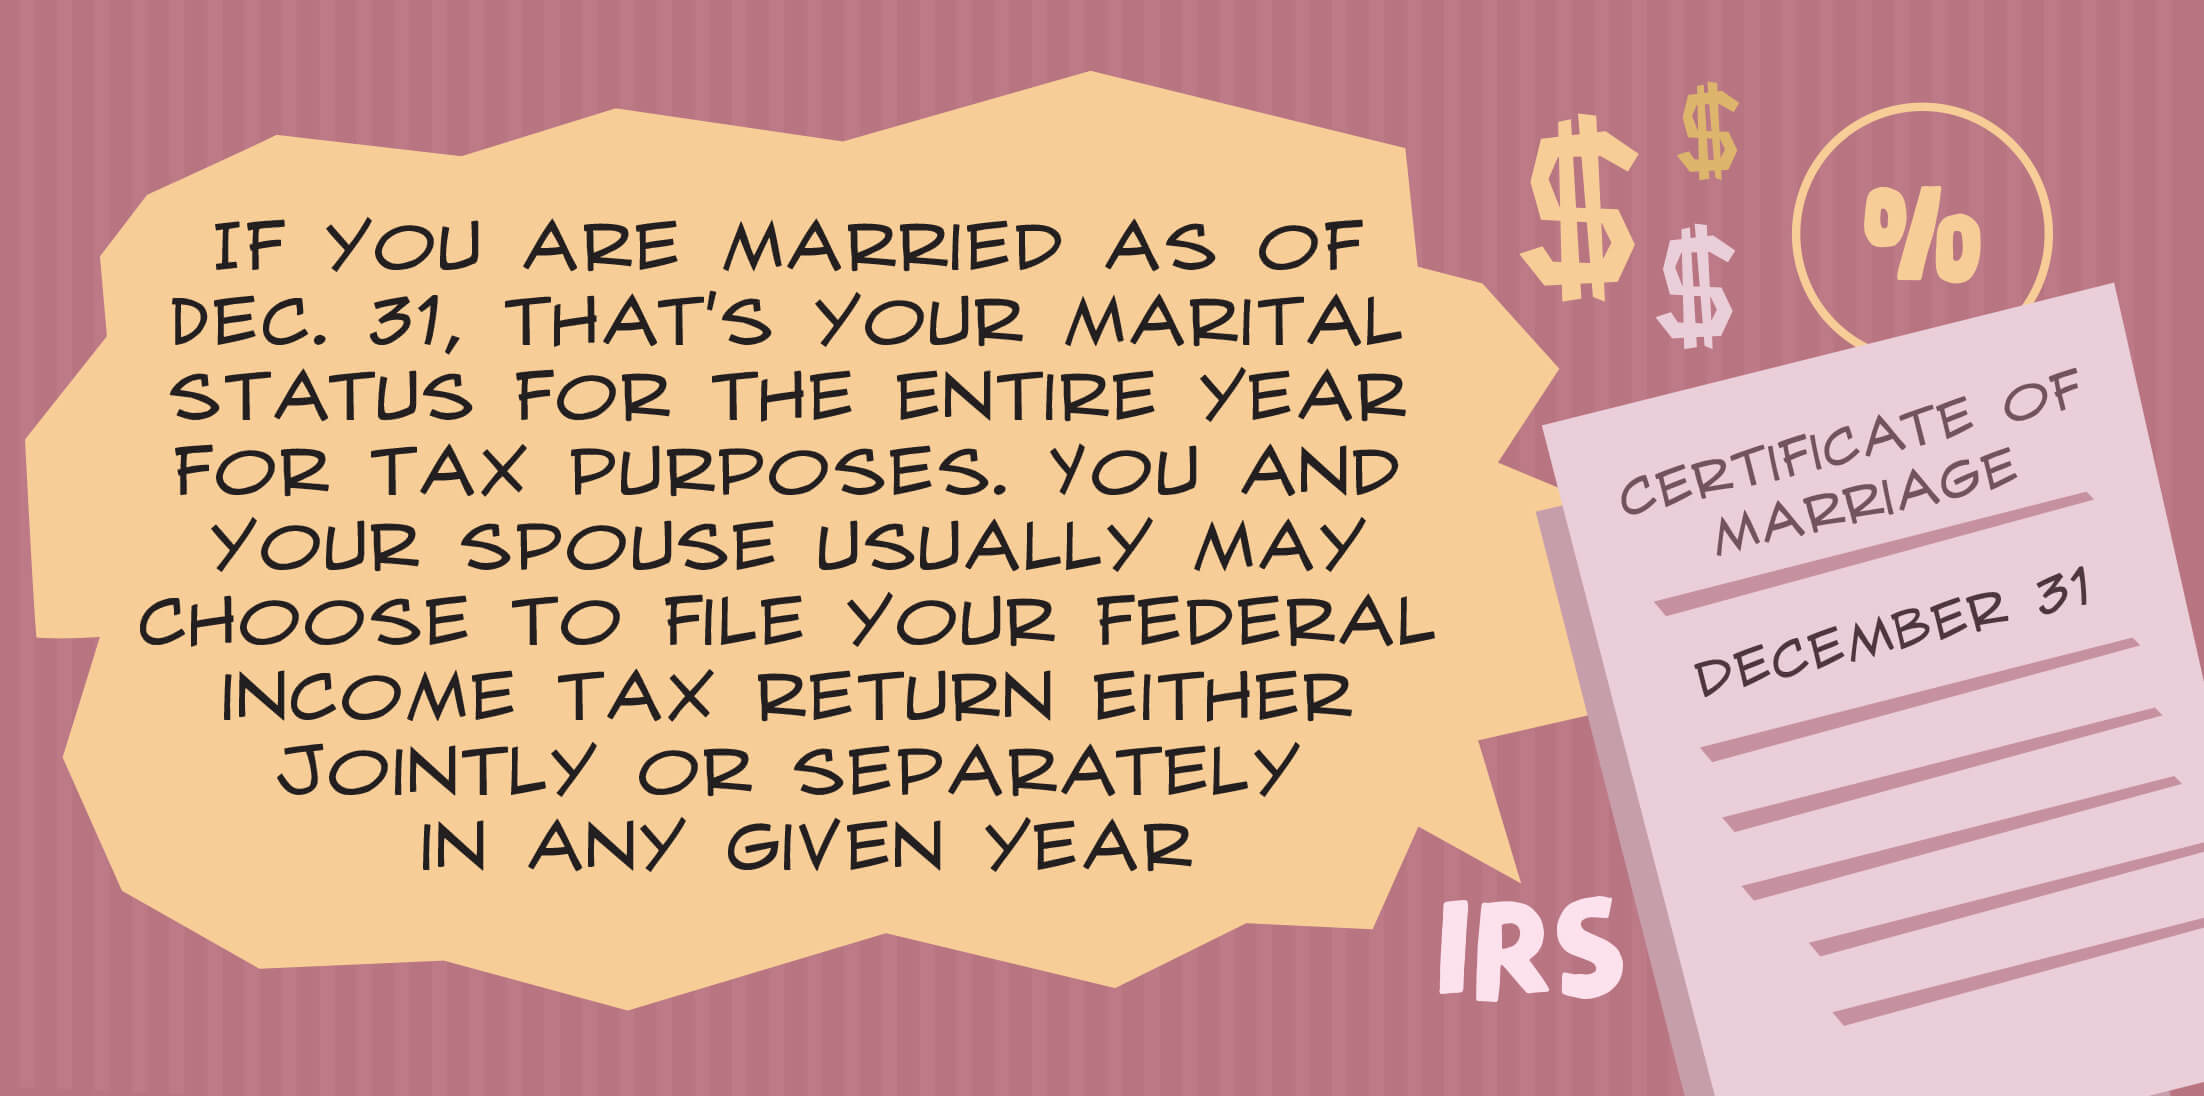 You And Your Spouse Usually May Choose To File Your Federal Income Tax  Return Either Jointly Or Separately In Any Given Year